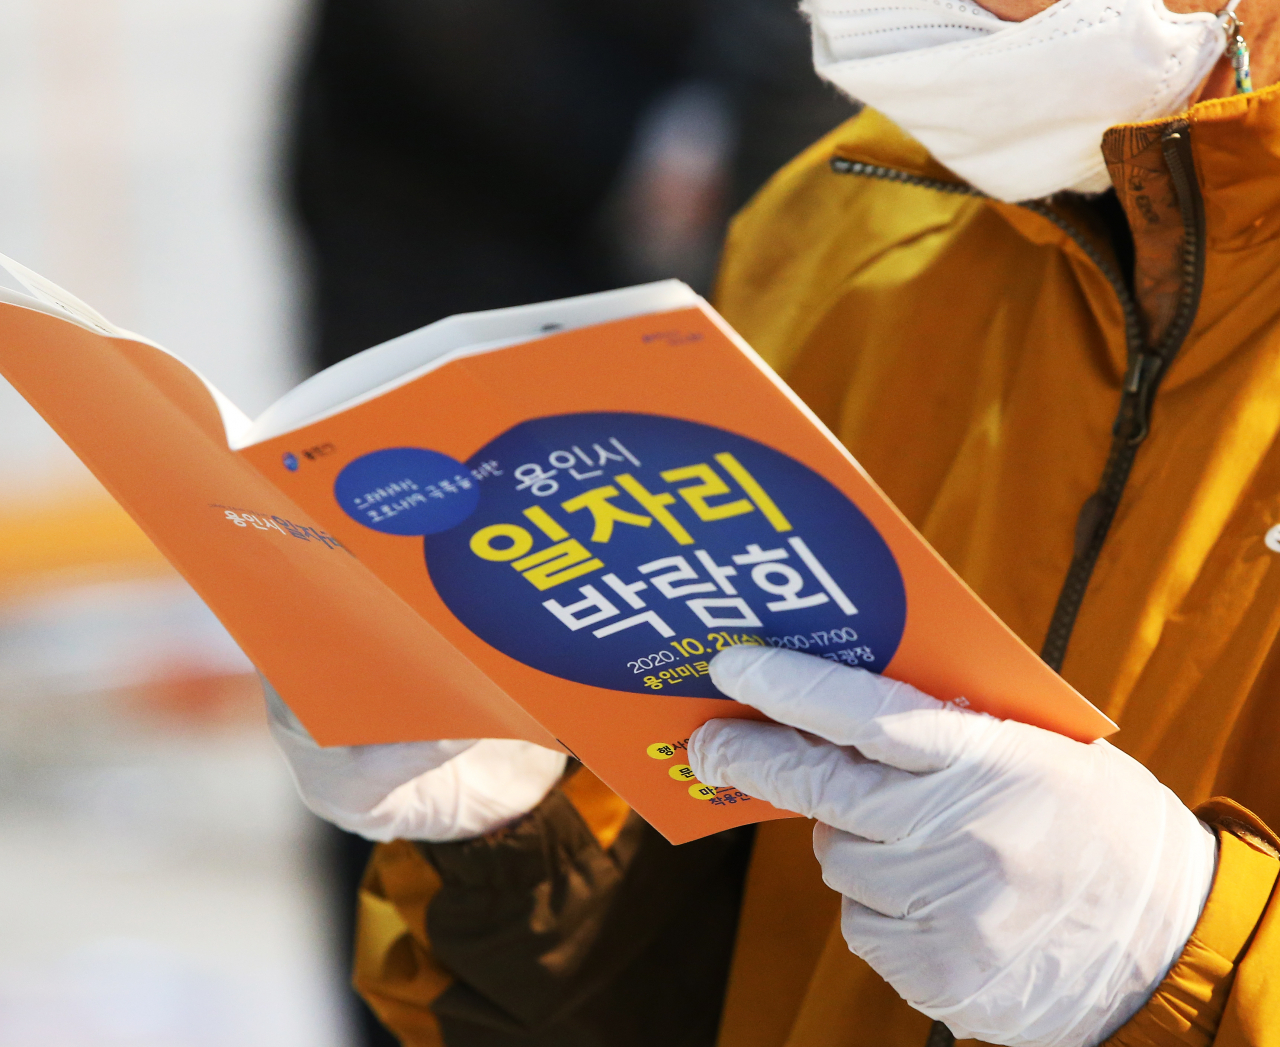 Wearing a mask and plastic gloves, a job seeker reads a pamphlet at a job fair in Yongin, just south of Seoul, on Oct. 21. (Yonhap)